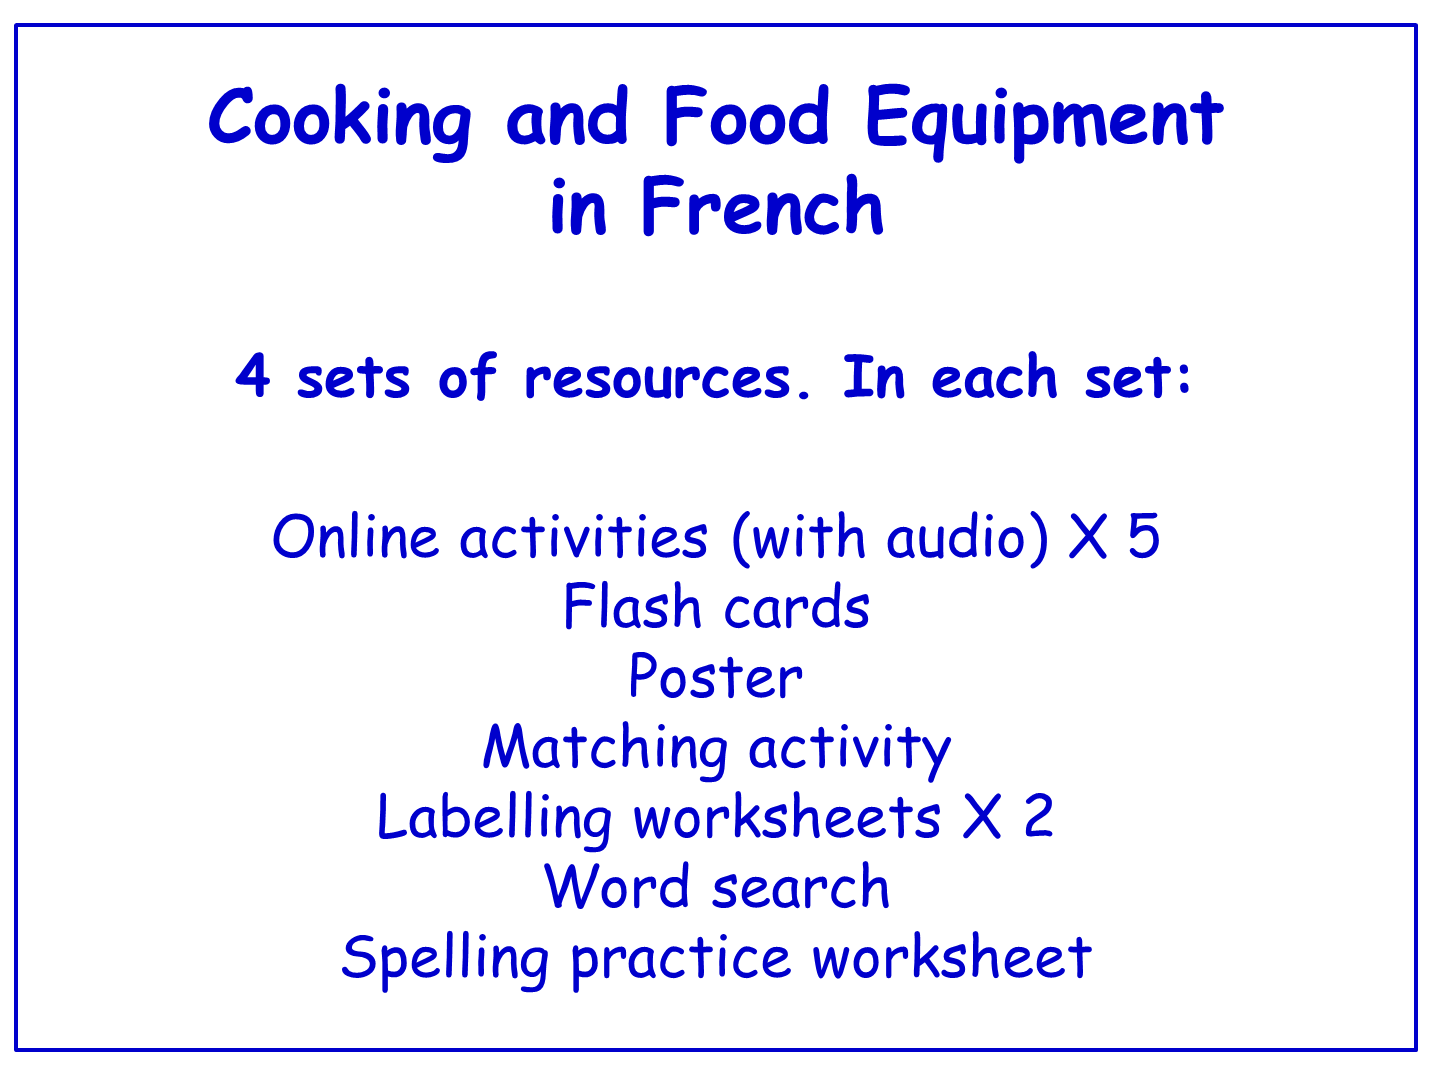 Cooking and Food Equipment in French Worksheets, Games, Activities and Flash Cards (with audio) Bundle (4 sets)